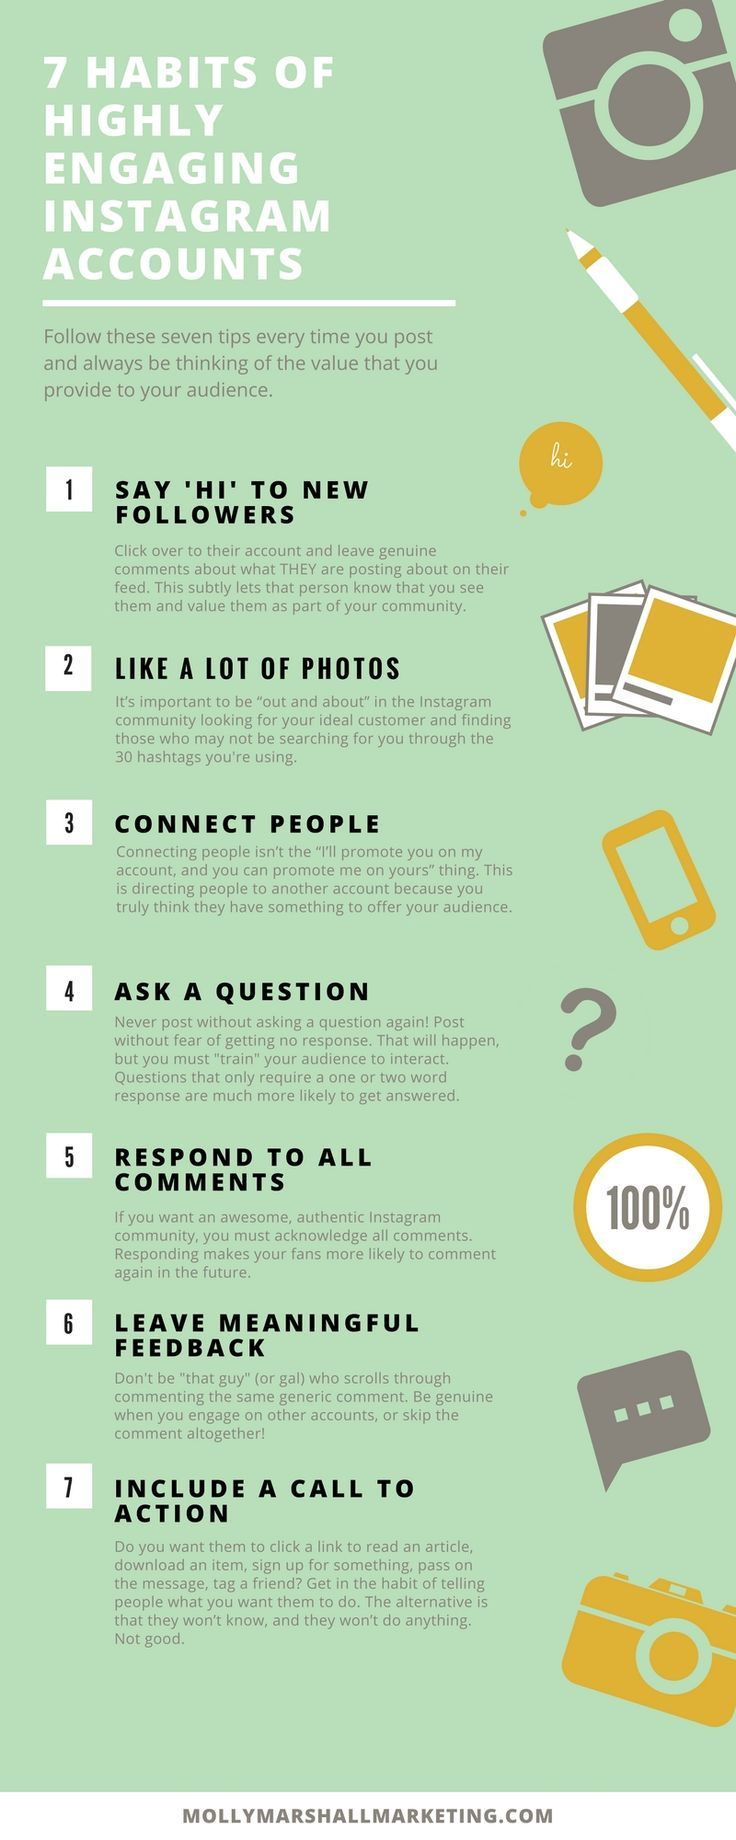 Seven Ways To Increase Your Instagram Engagement. Remember to follow these tips every time you post and always consider the value that you are bringing to your audience.